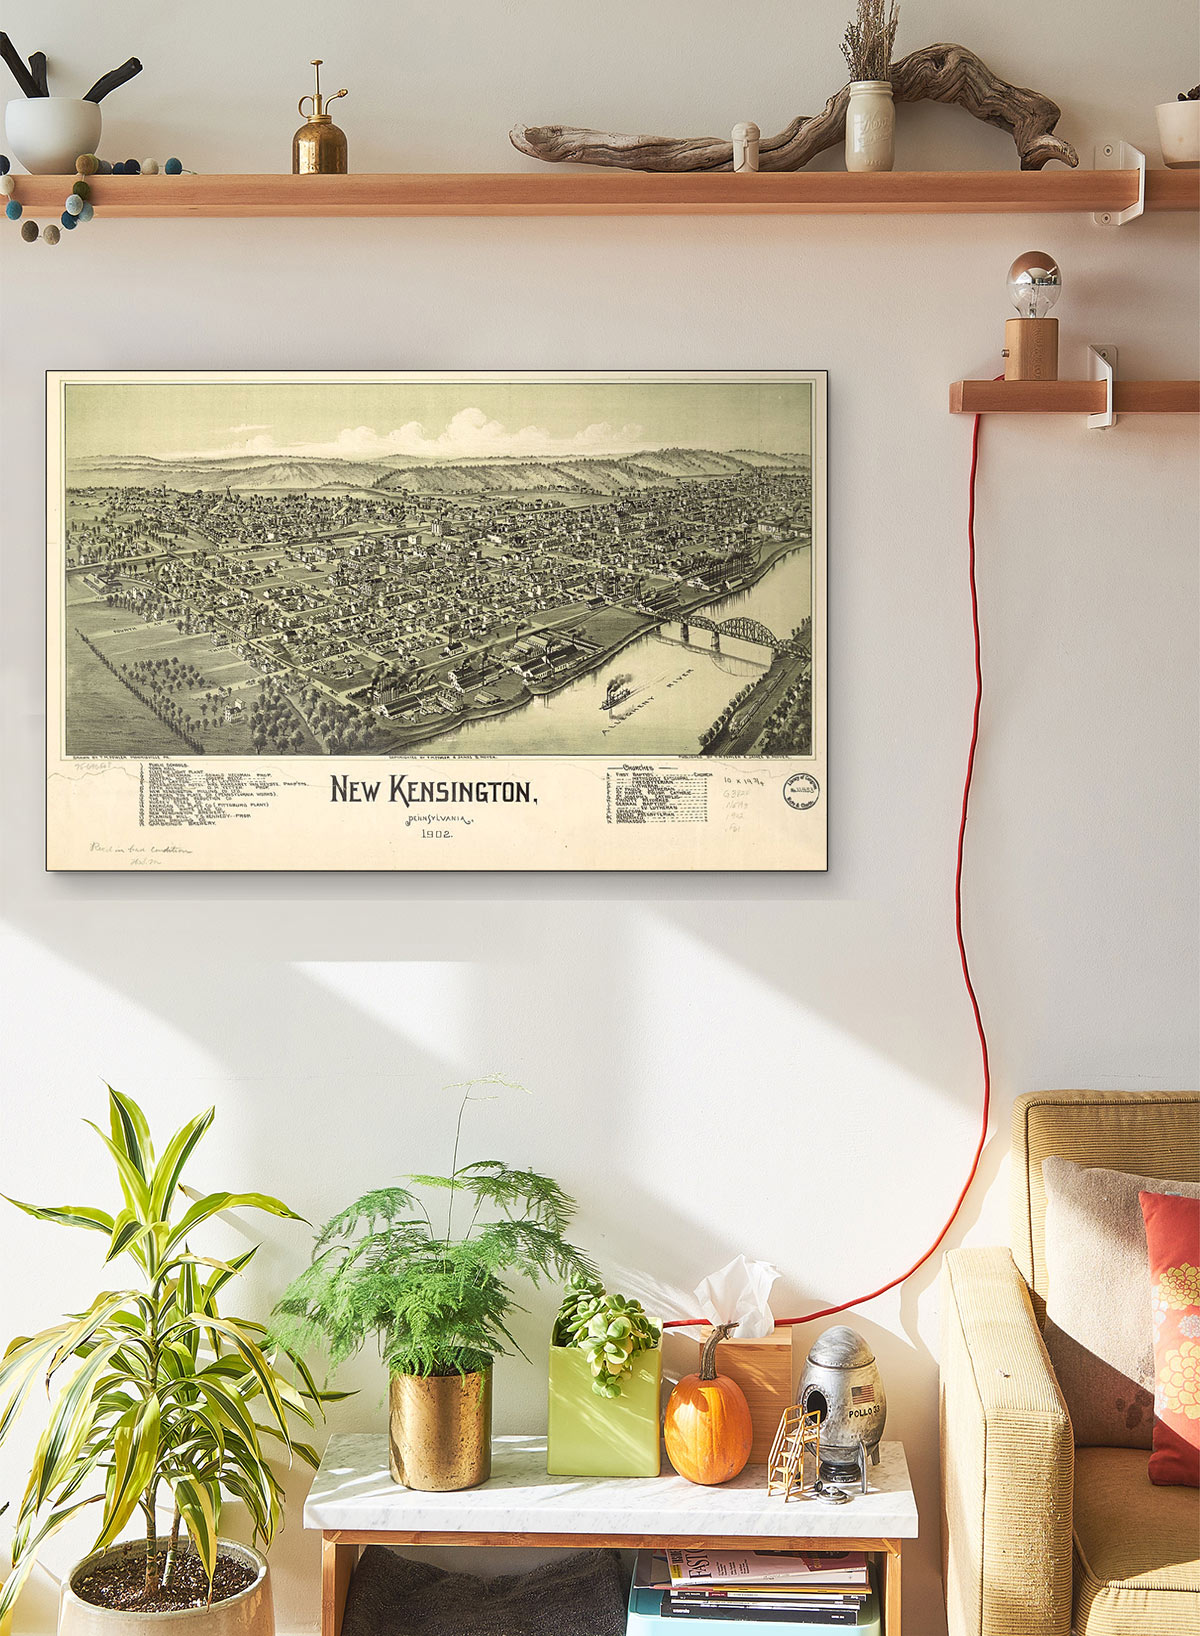 New Kensington Pennsylvania 1902 LARGE Vintage Map